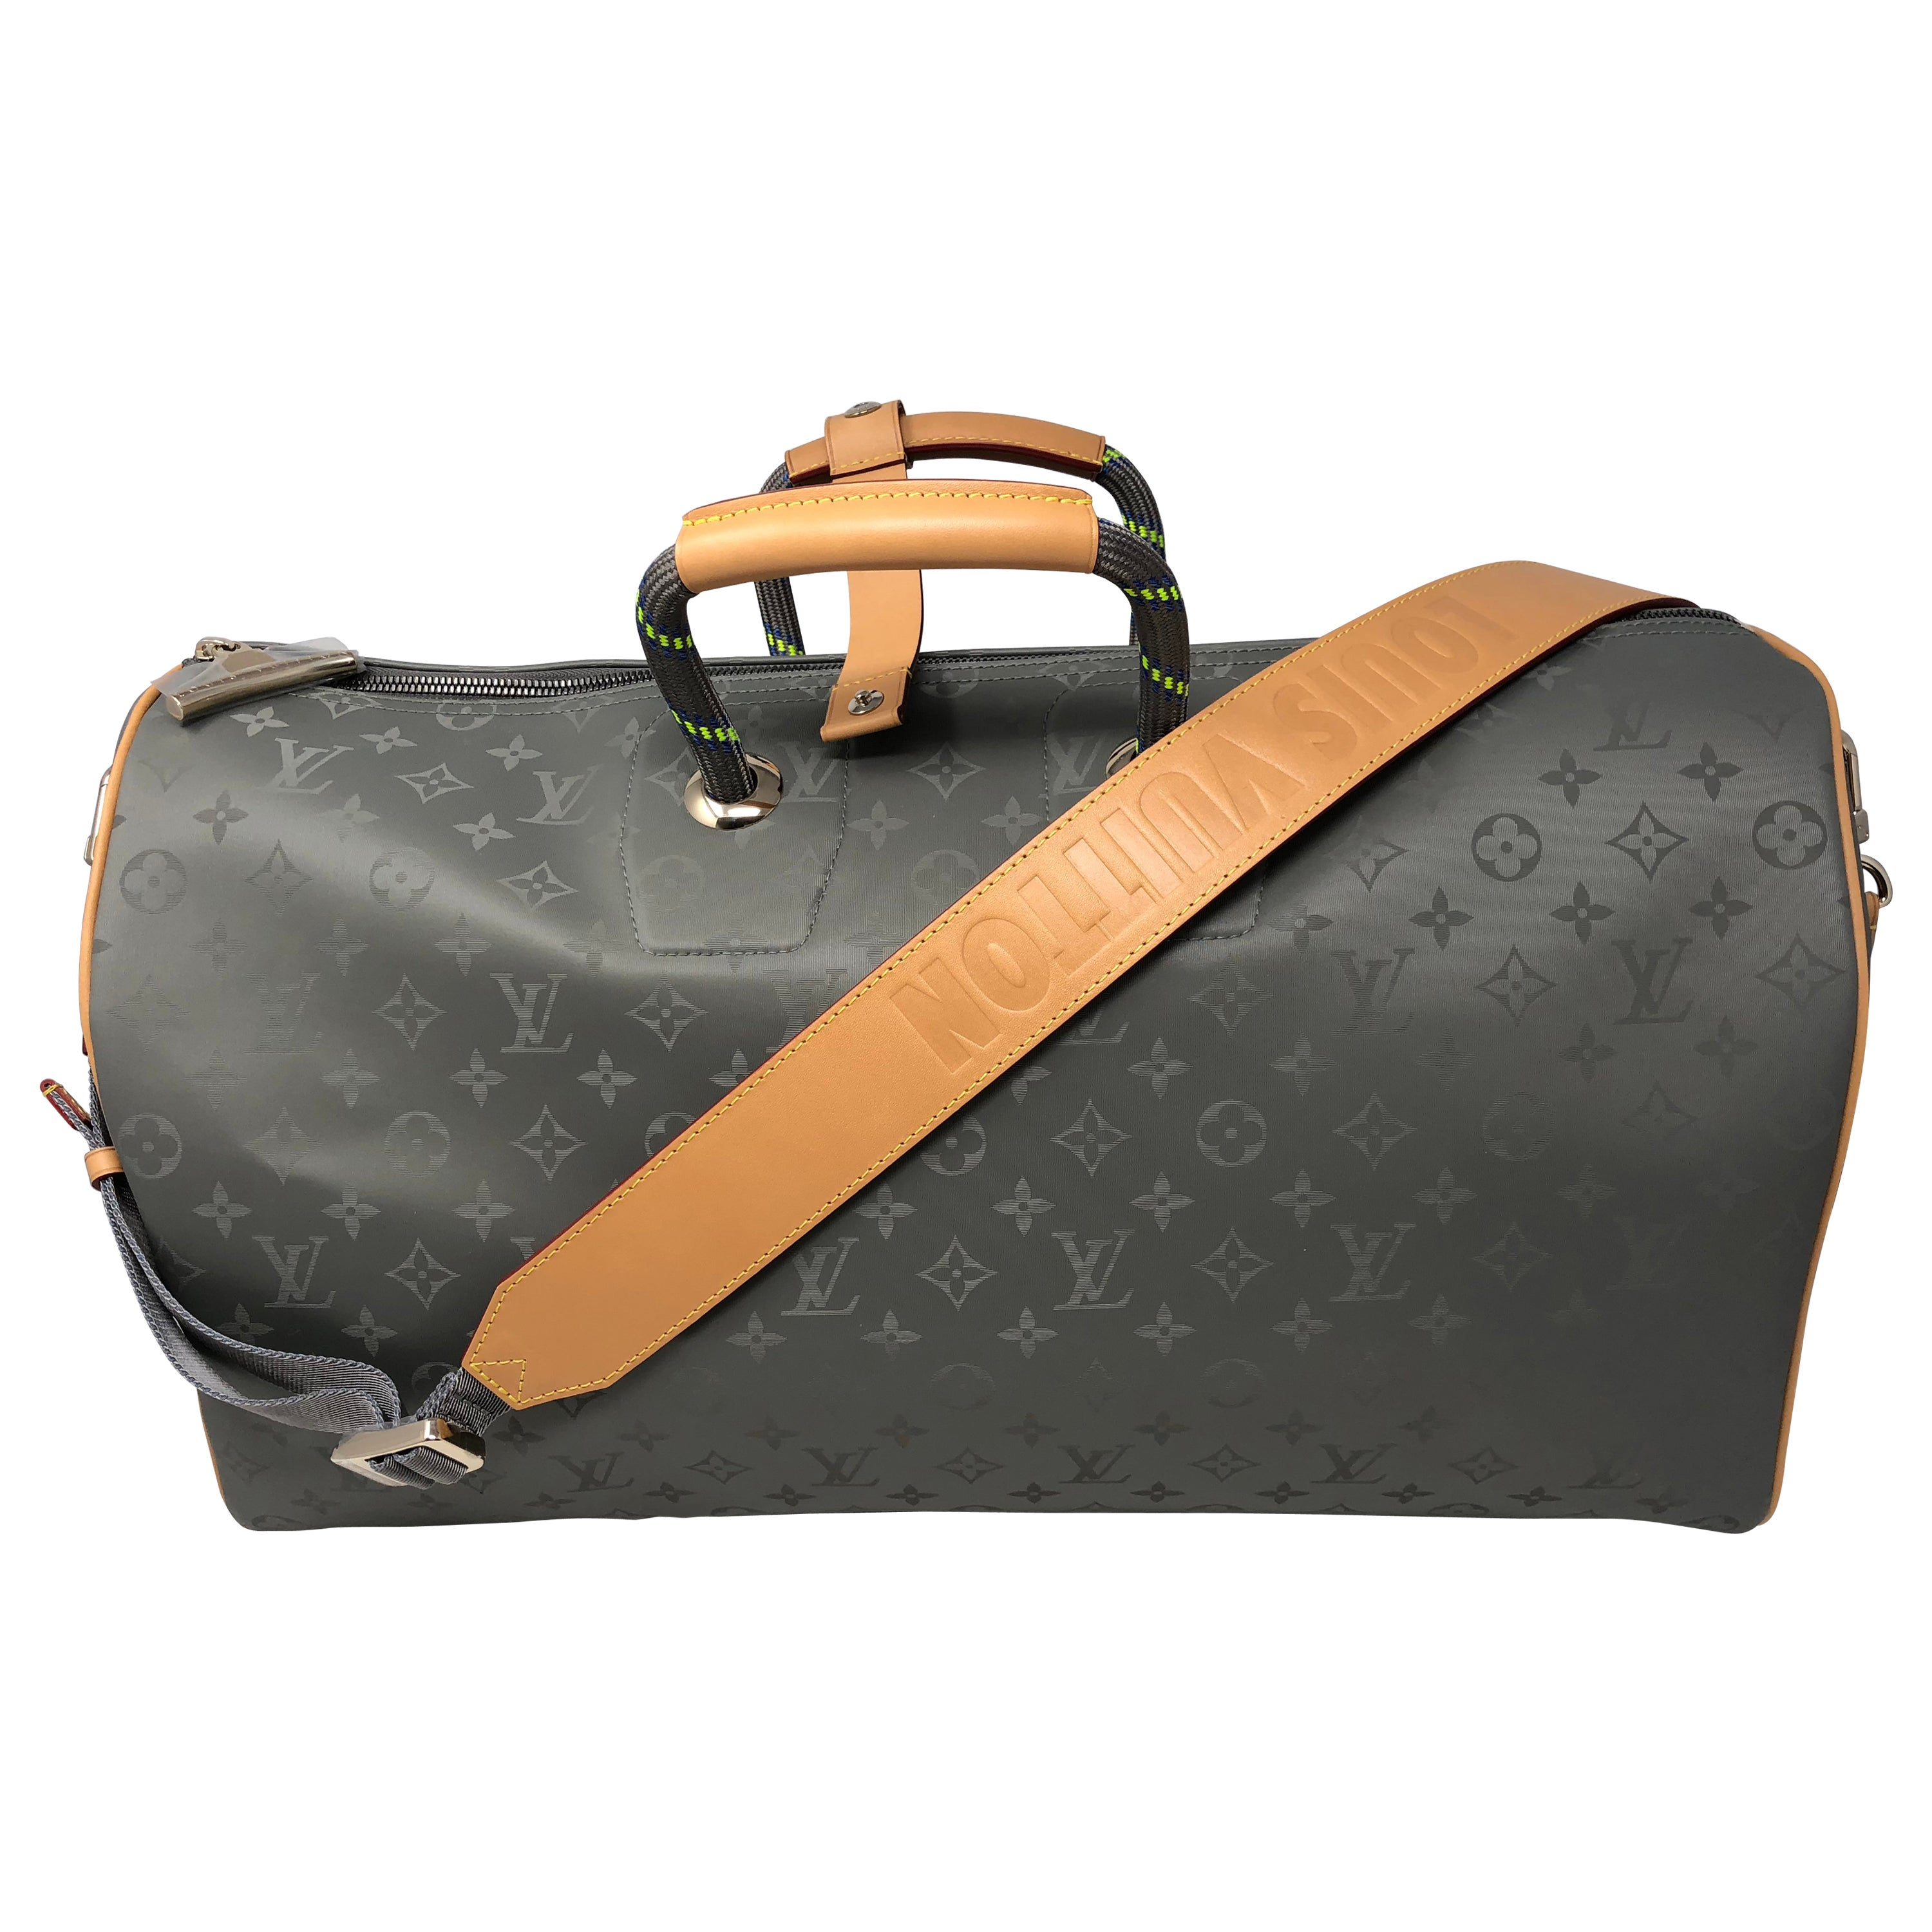 36fa76dd3d28 Louis Vuitton Titanium 50 Grey Keepall Bandouliere at 1stdibs